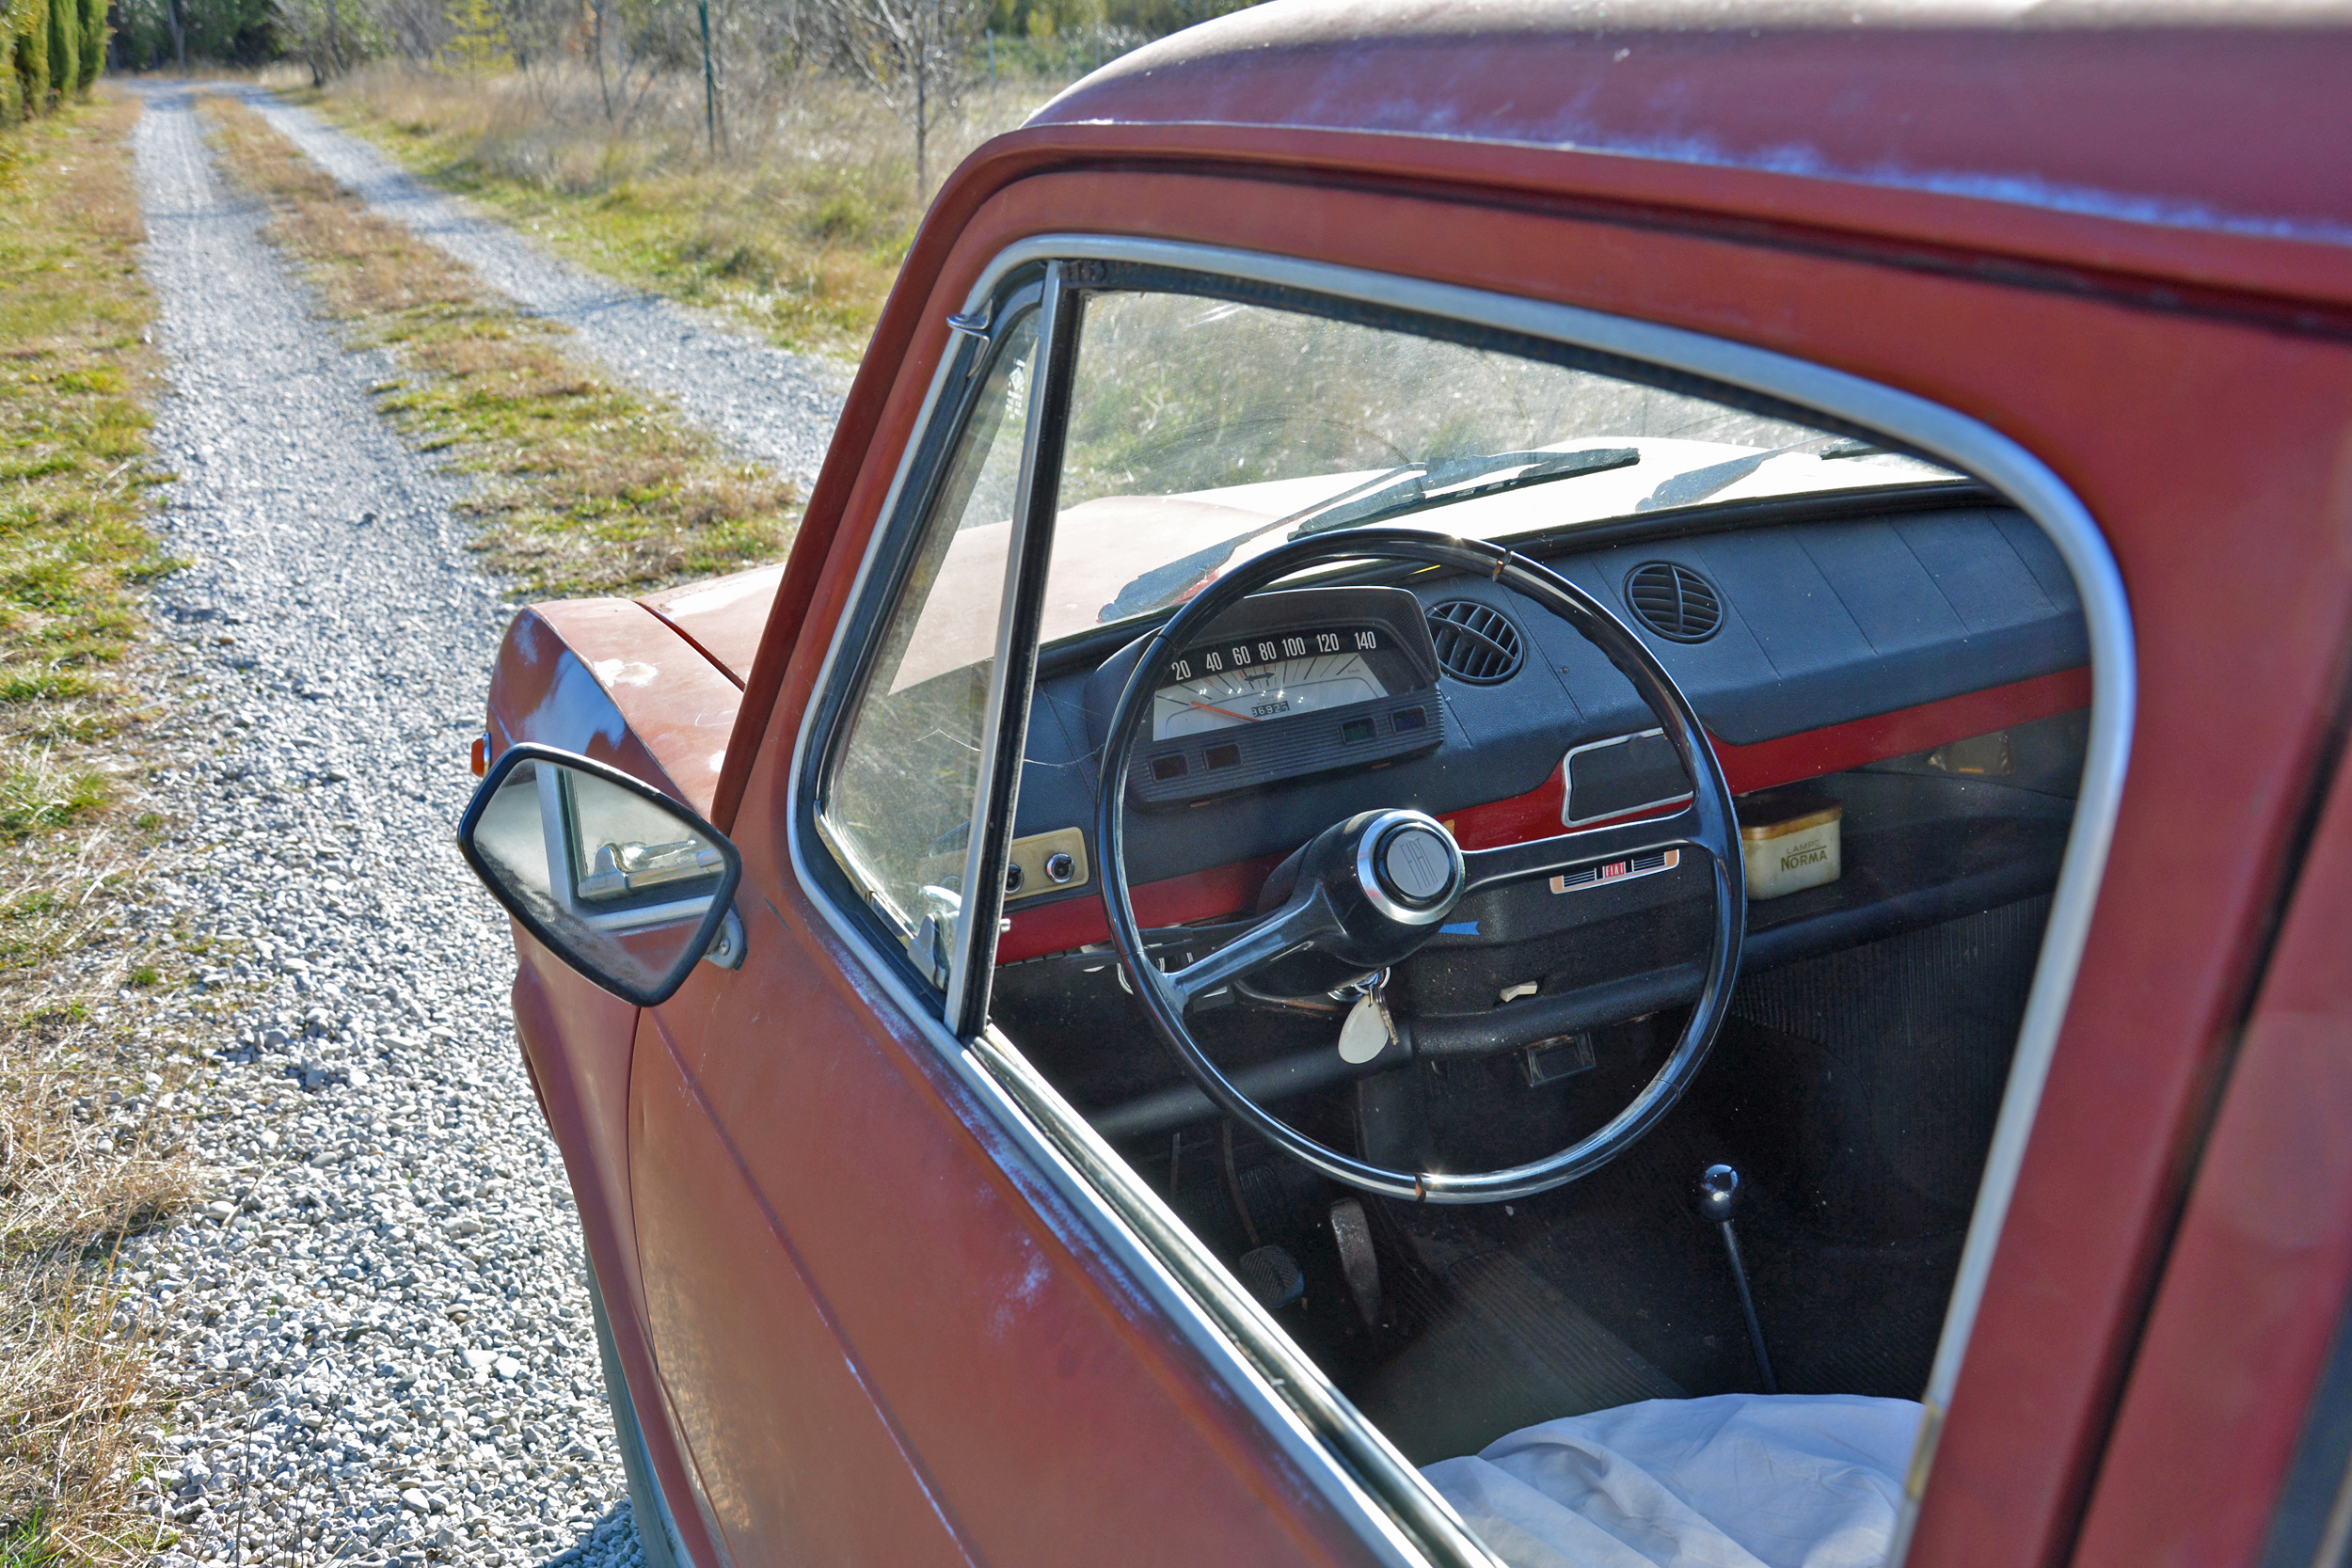 1971 Fiat 850 Interior View Through Window